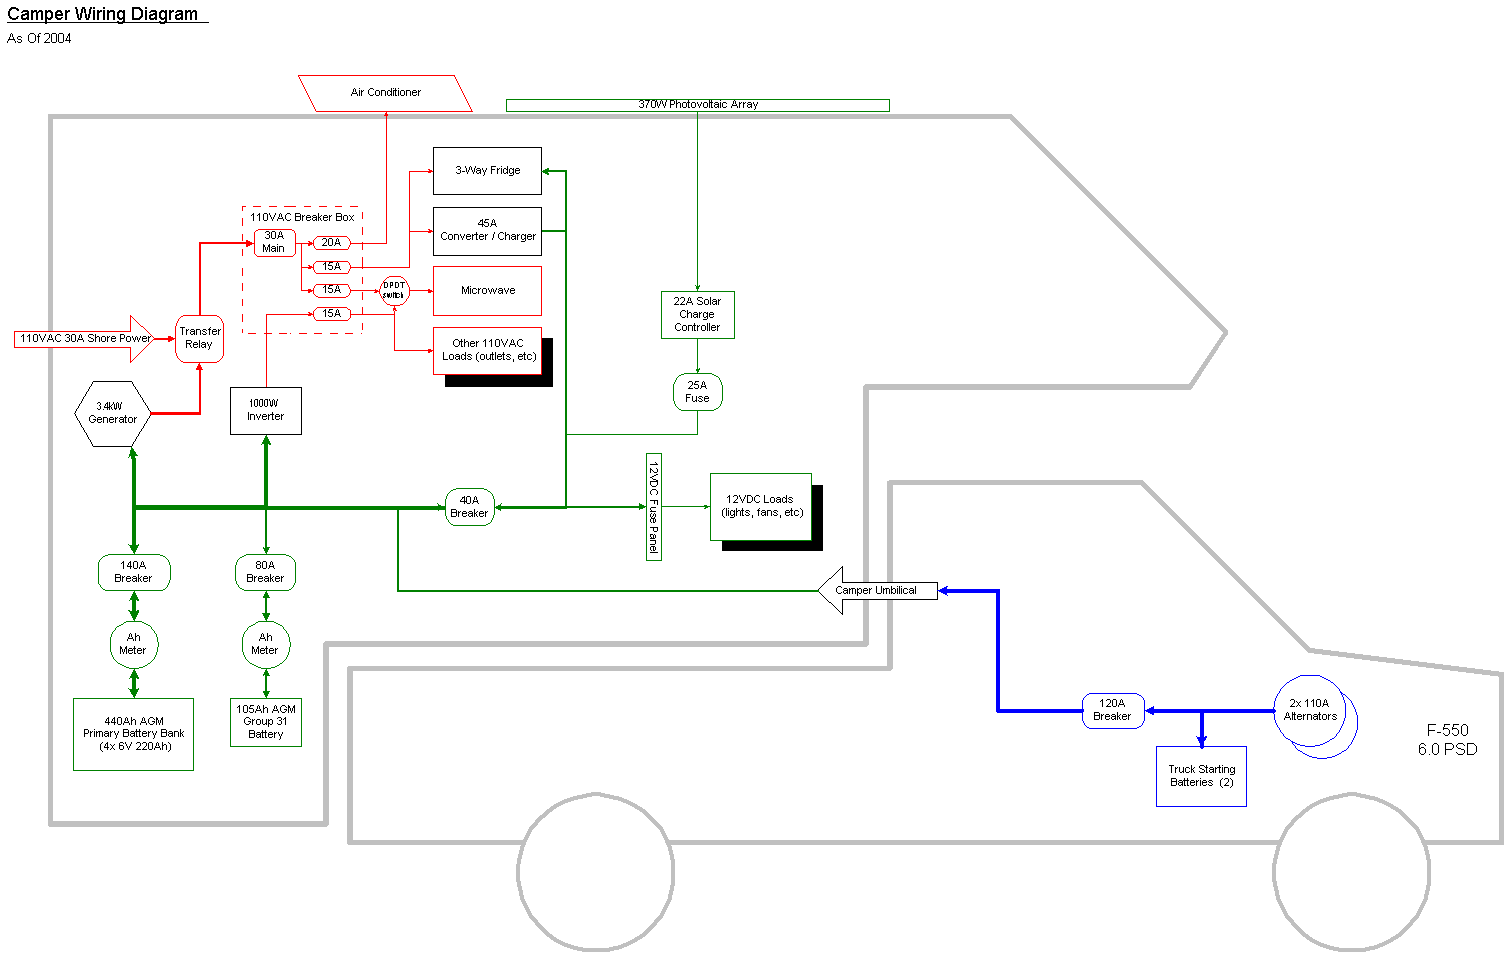 2004Diagram camper wiring diagram camper wiring diagram vw 1969 \u2022 wiring 1734 ib8 wiring diagram at mr168.co